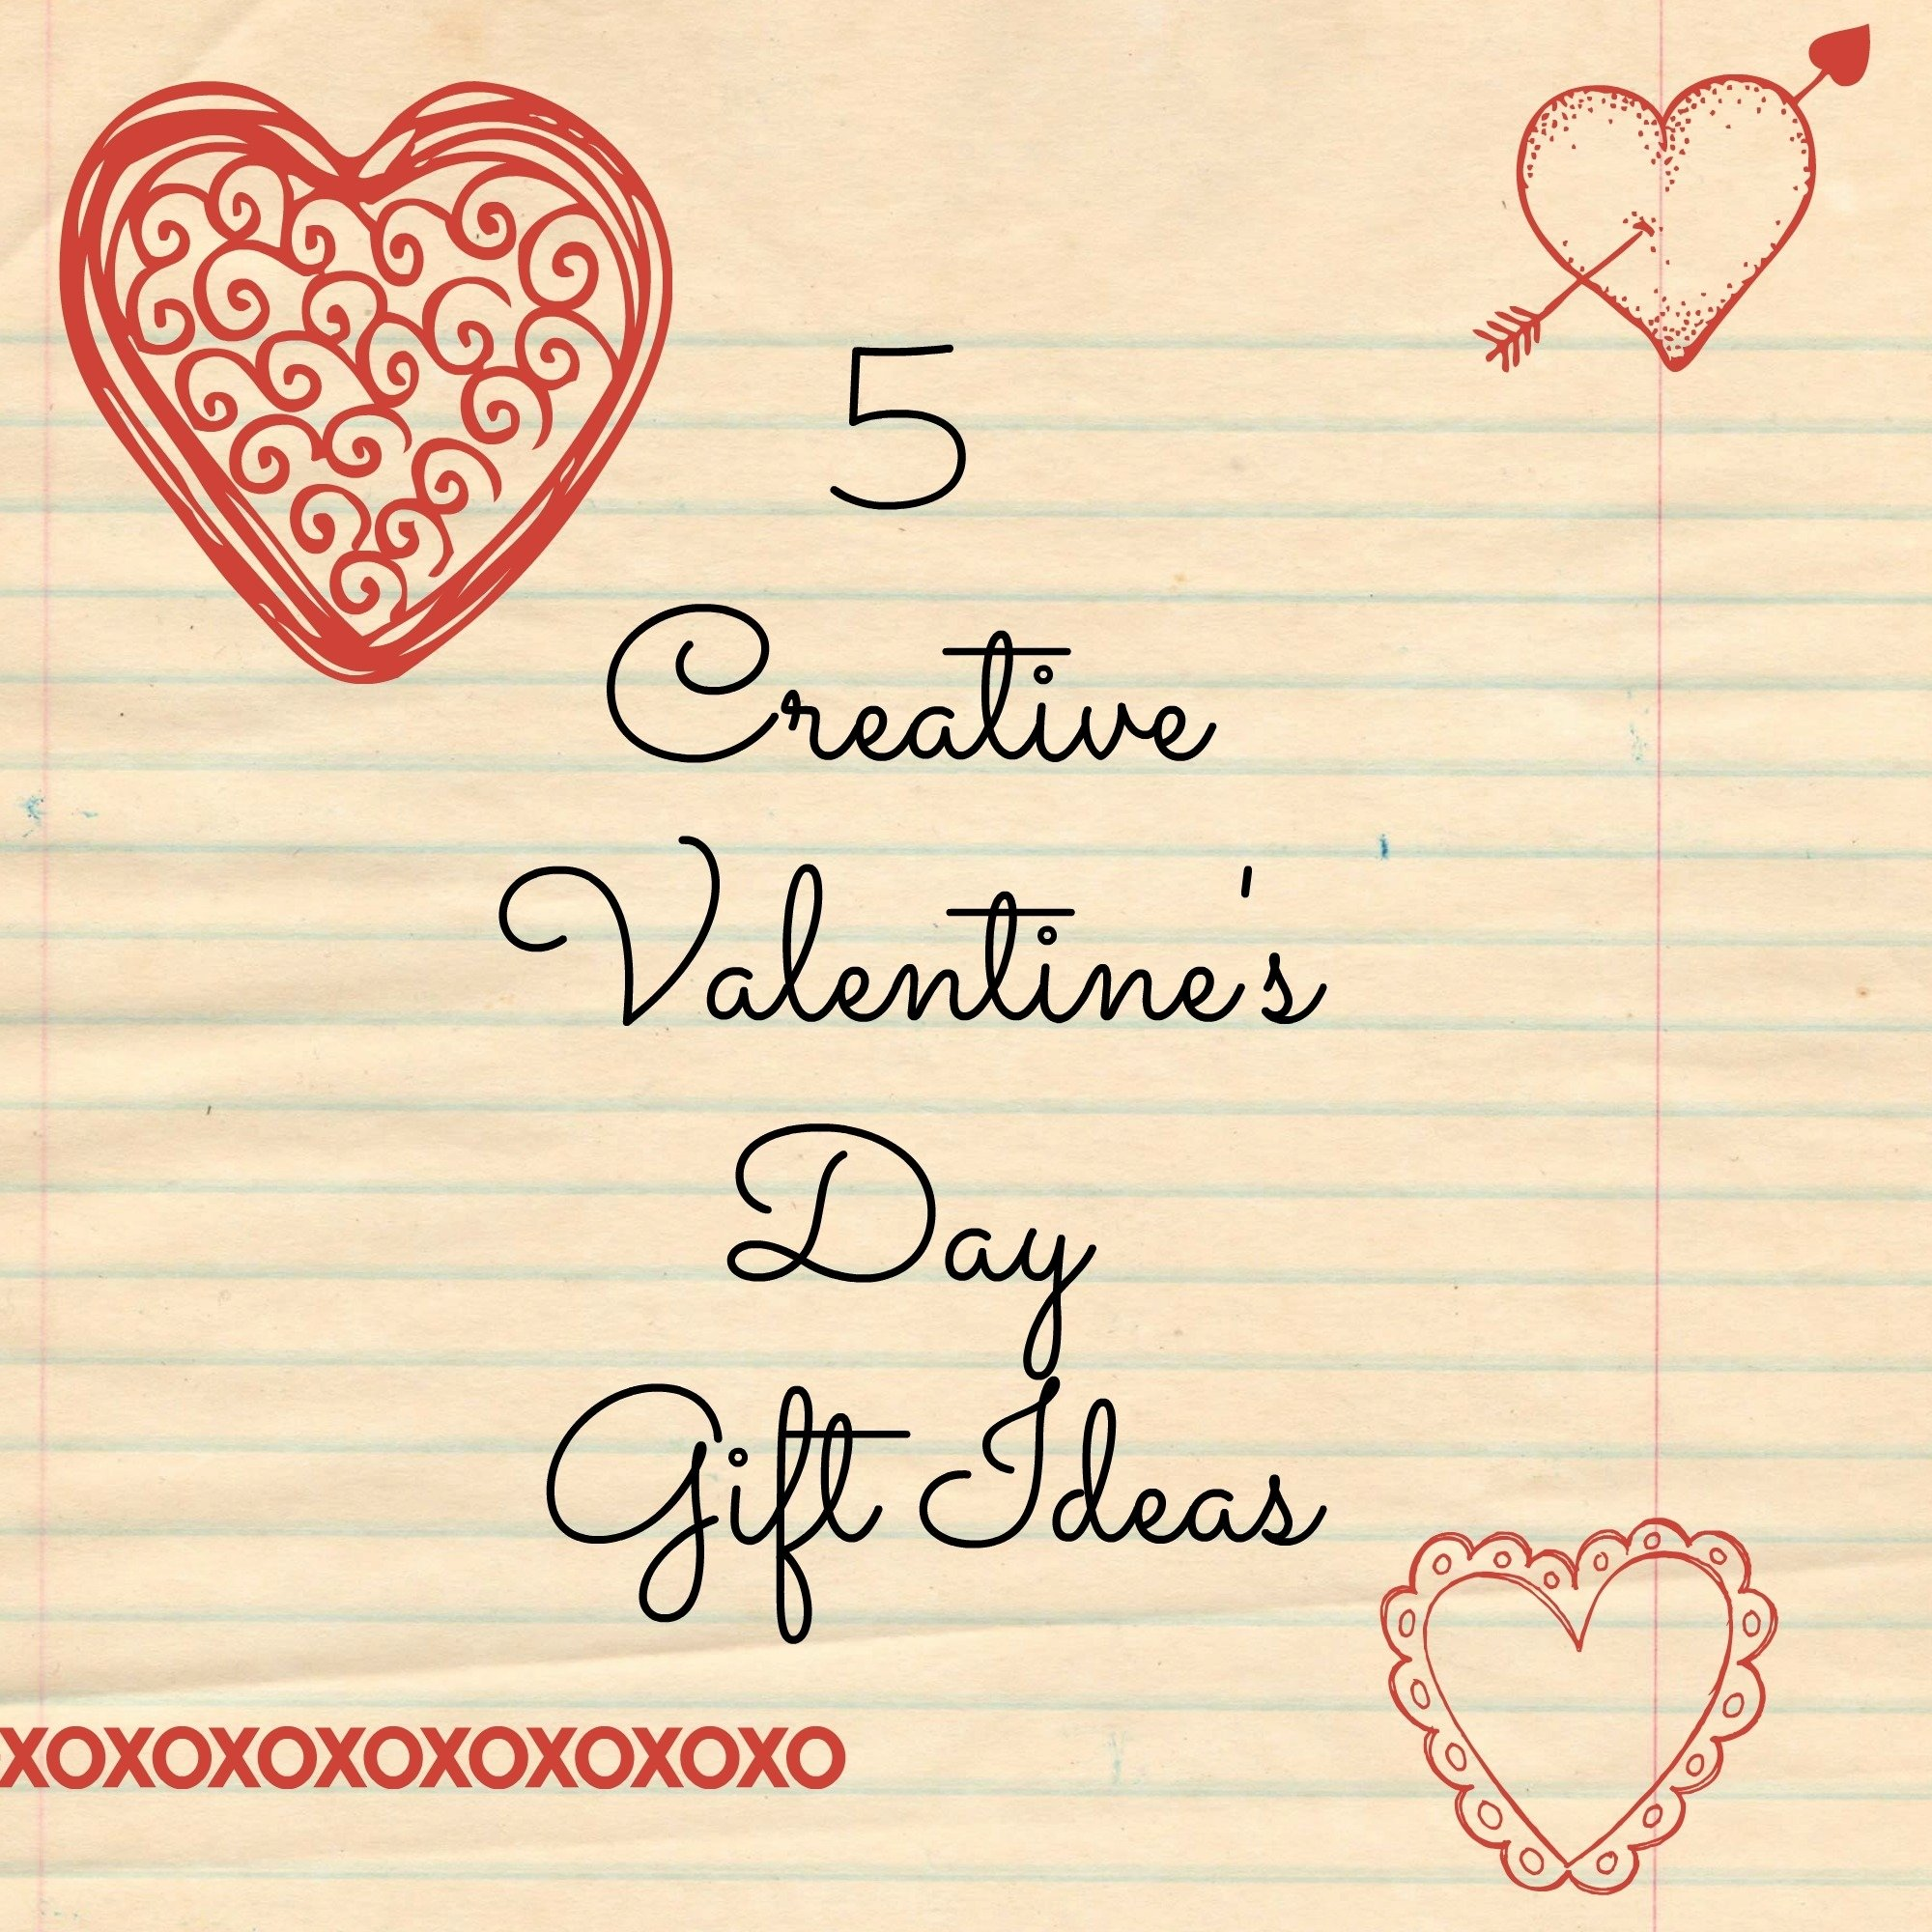 10 Lovely Valentines Day Ideas For Husband valentine day gift ideas for husband valentines day pictures 1